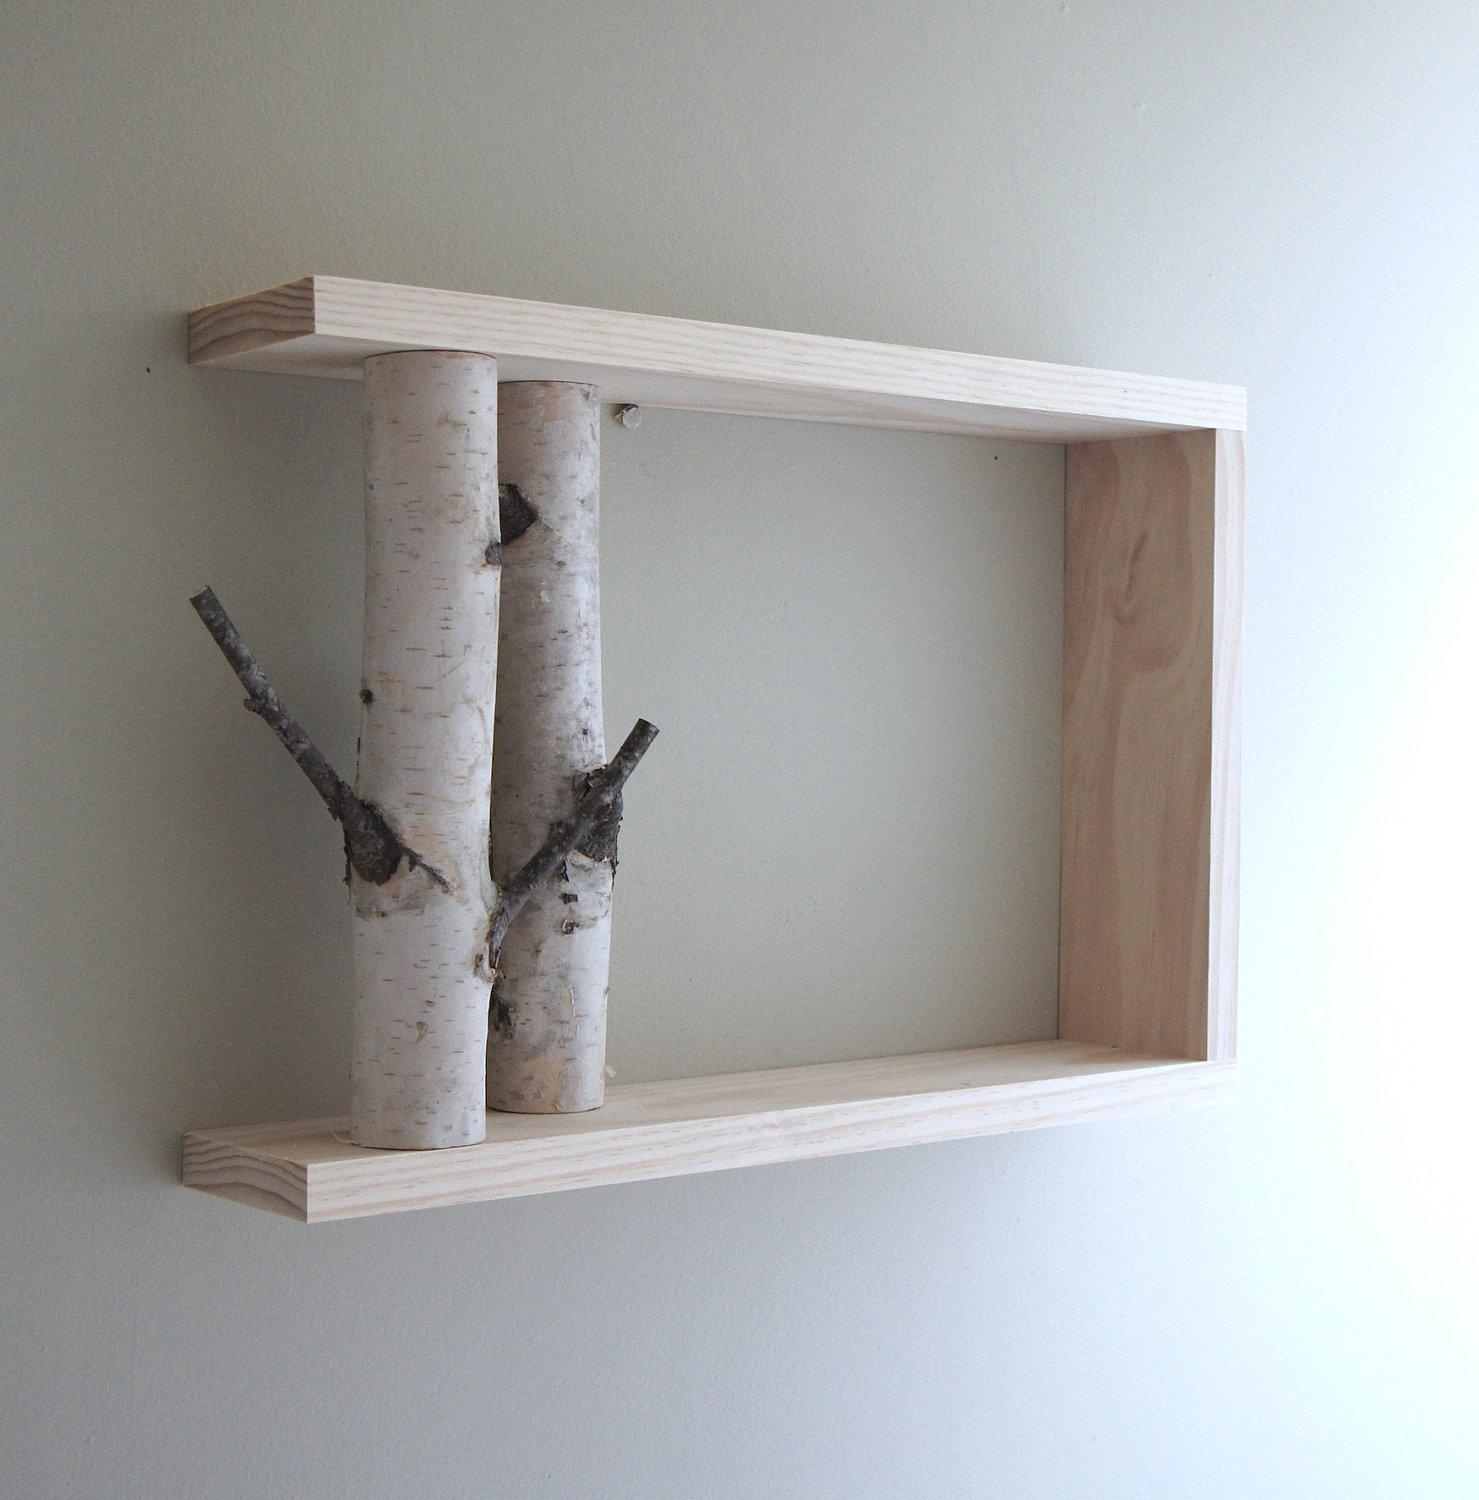 White Birch Forest Wall Art/shelf 18X12 Birch Shelf Within White Wooden Wall Art (Image 18 of 20)